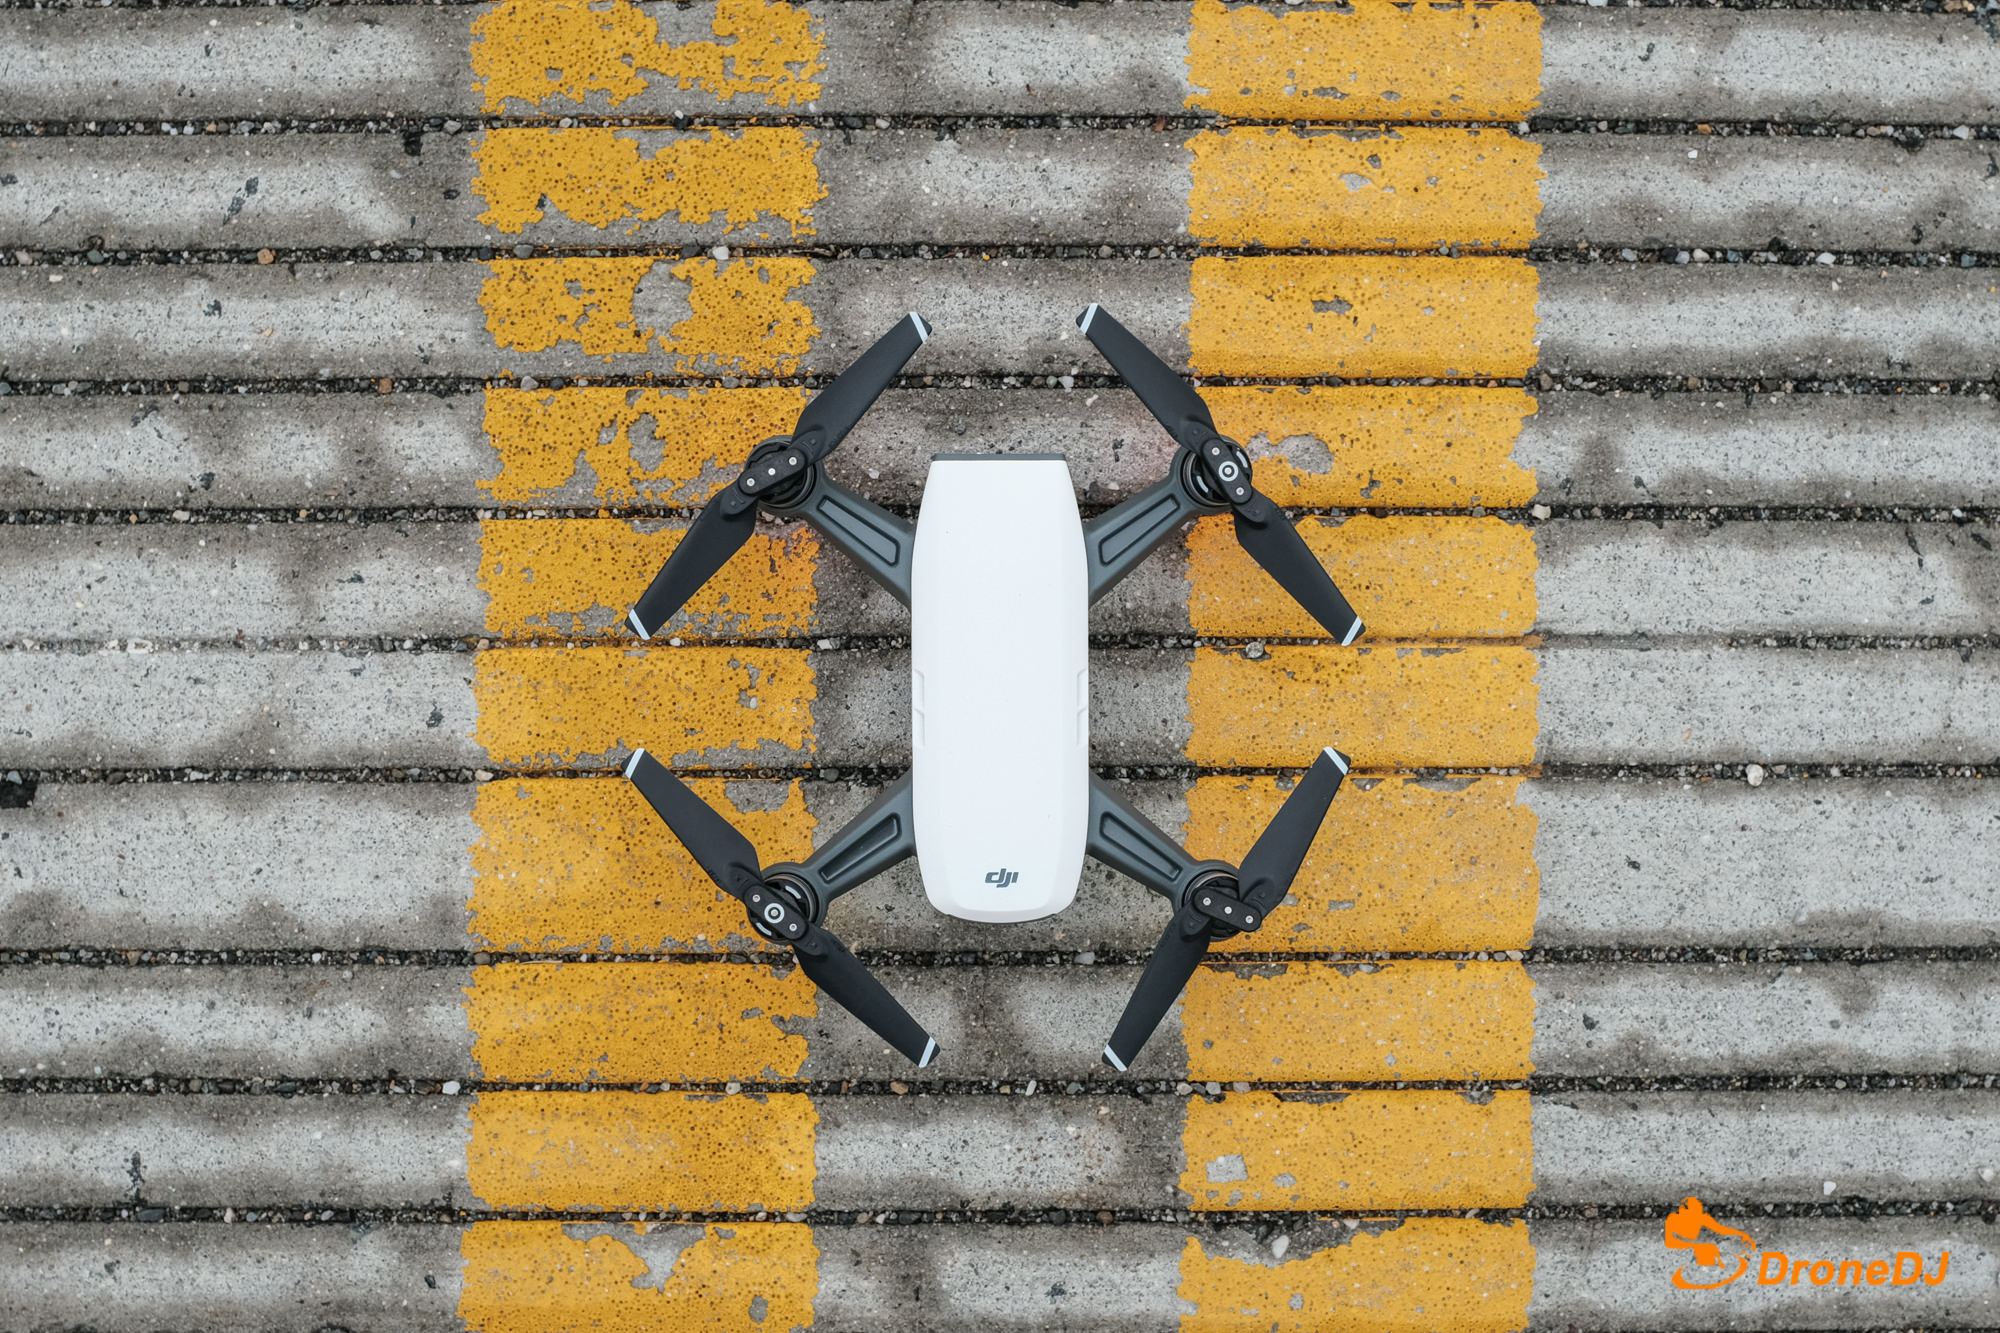 DJI Just Released A Firmware Update Yesterday To Enhance Flight Safety For Your Spark